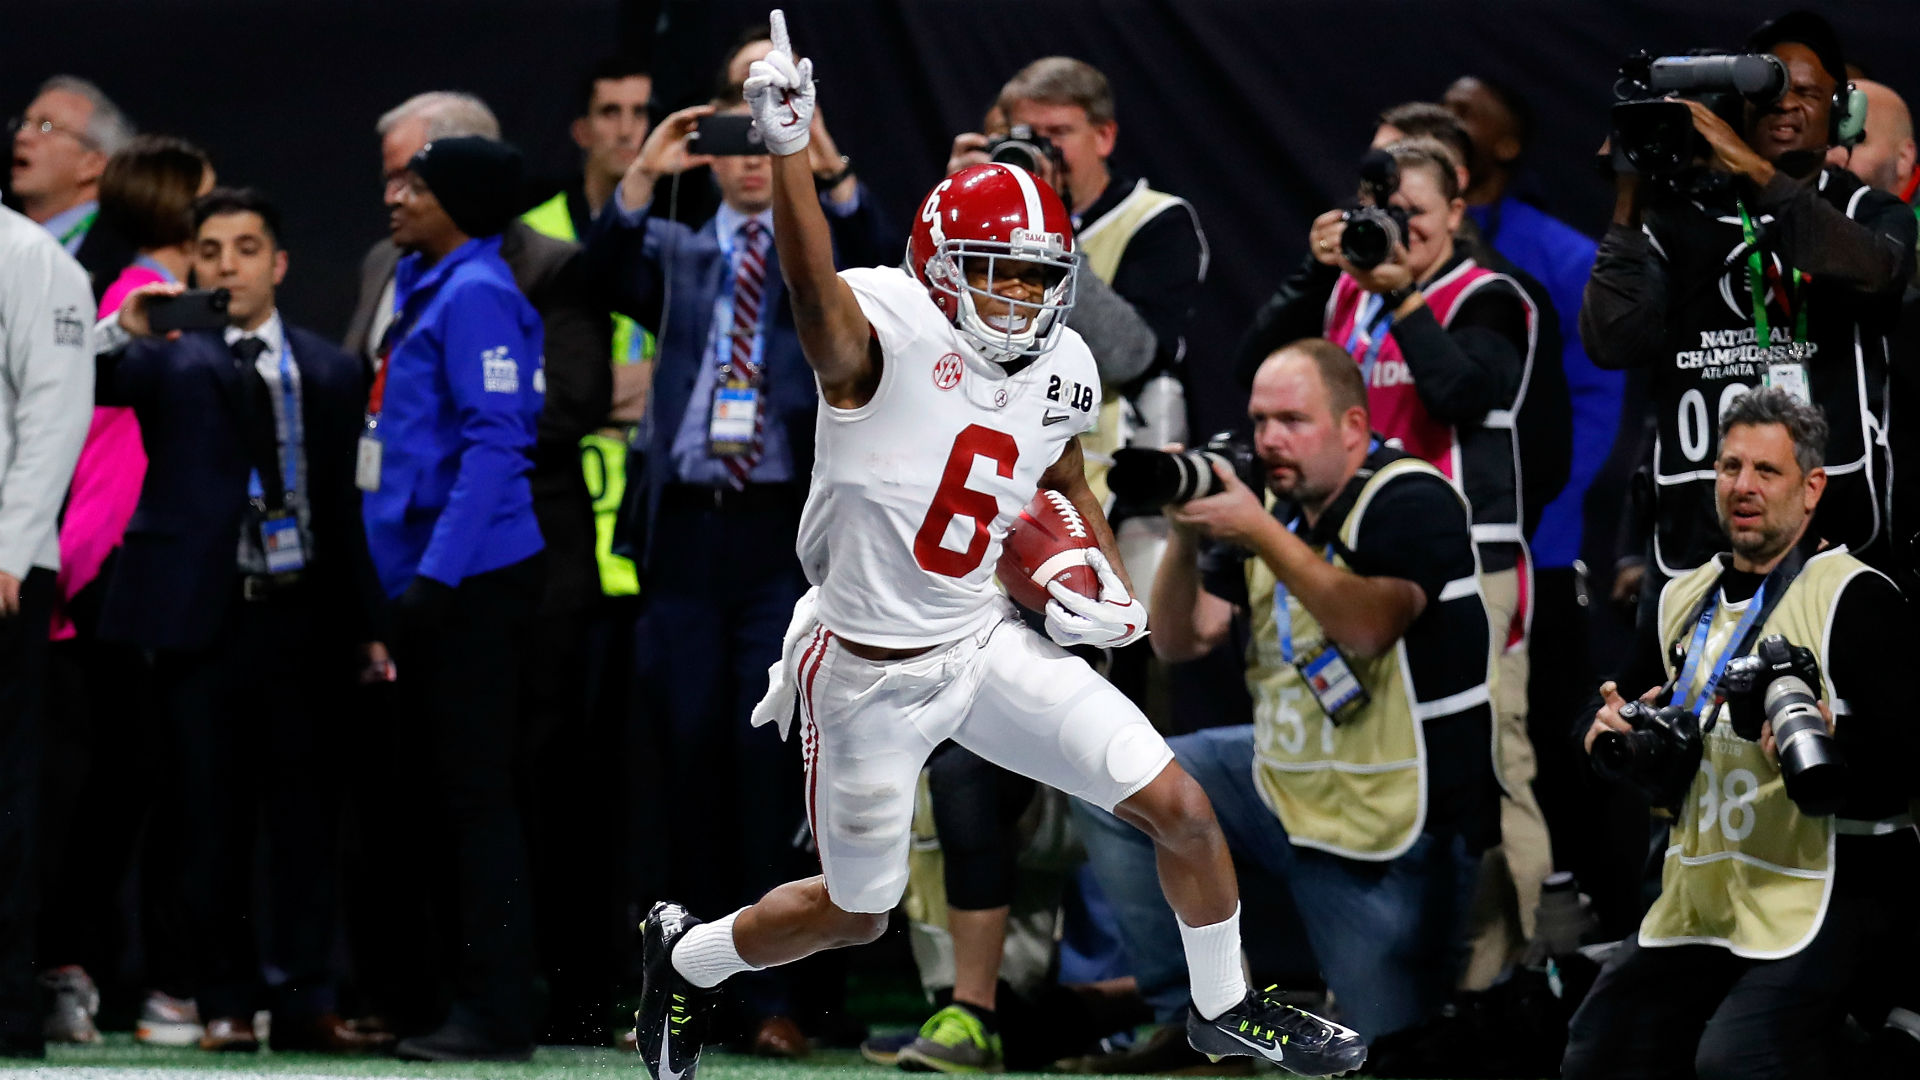 Alabama-Georgia Championship game is the second most watched ever